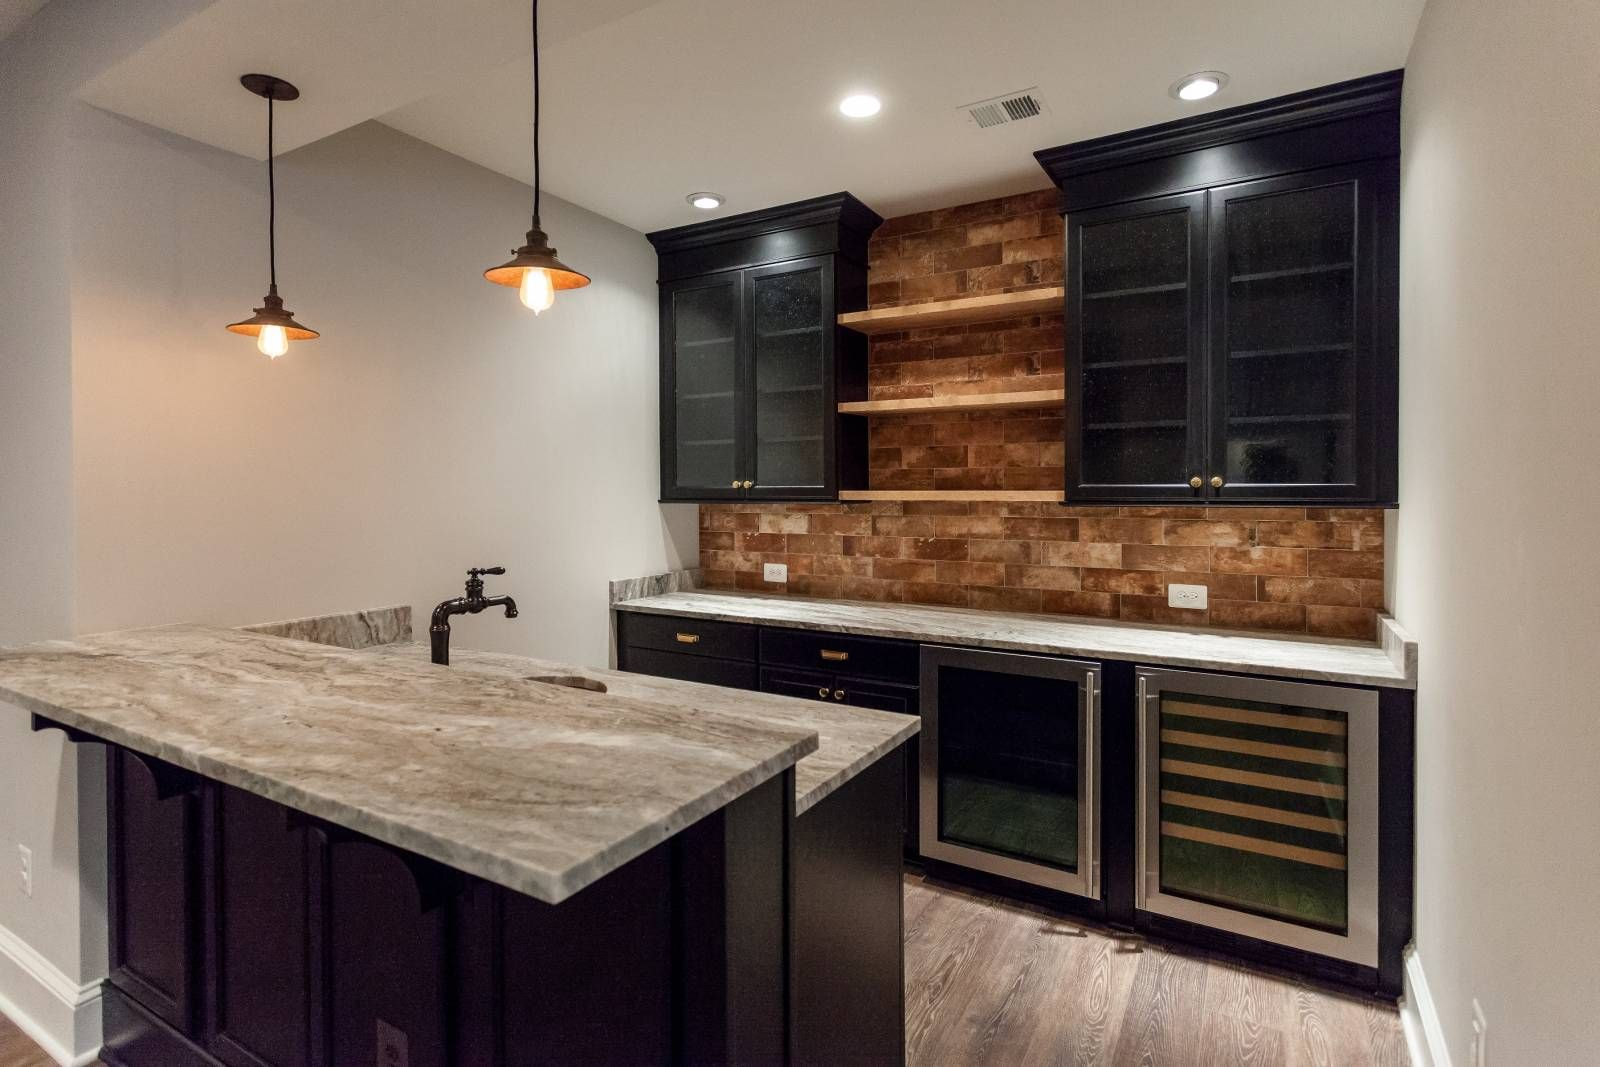 Basement Wet Bar With Black Lacquered Cabinets And Brick